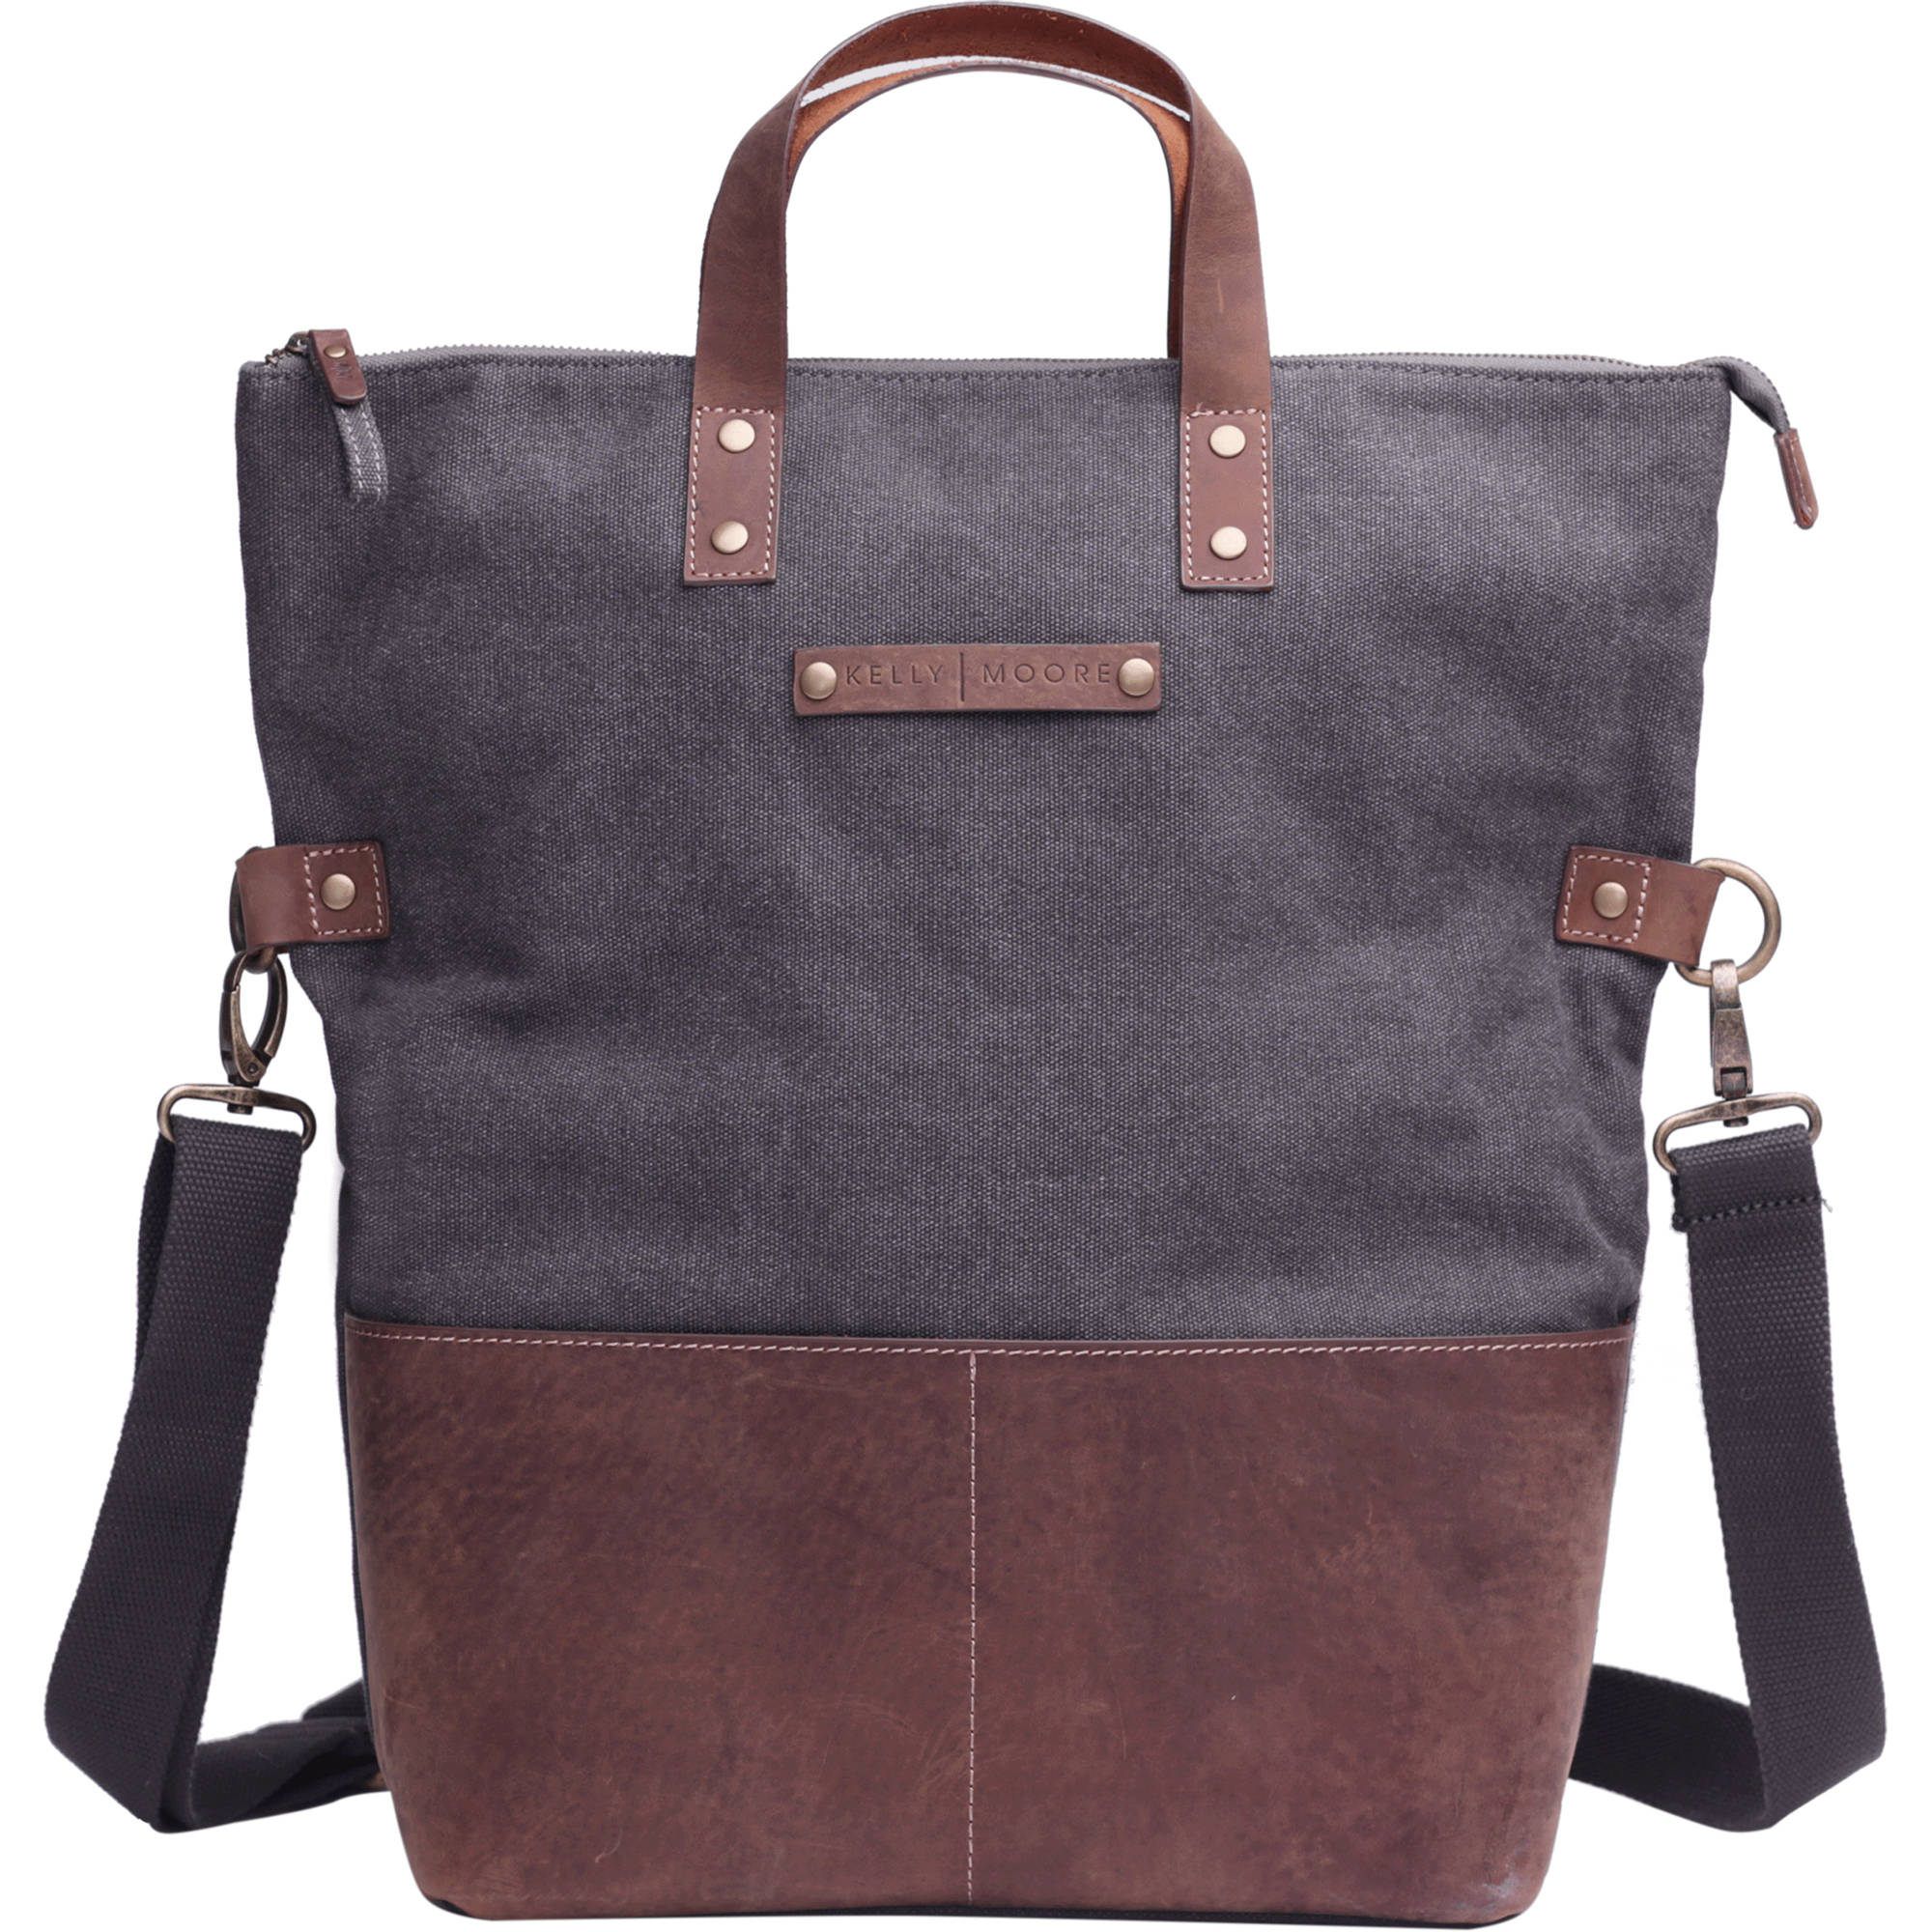 Kelly Moore Bag Collins Canvas   Leather Shoulder Bag with Removable Insert  (Gray with Brown a698c7874a4bf